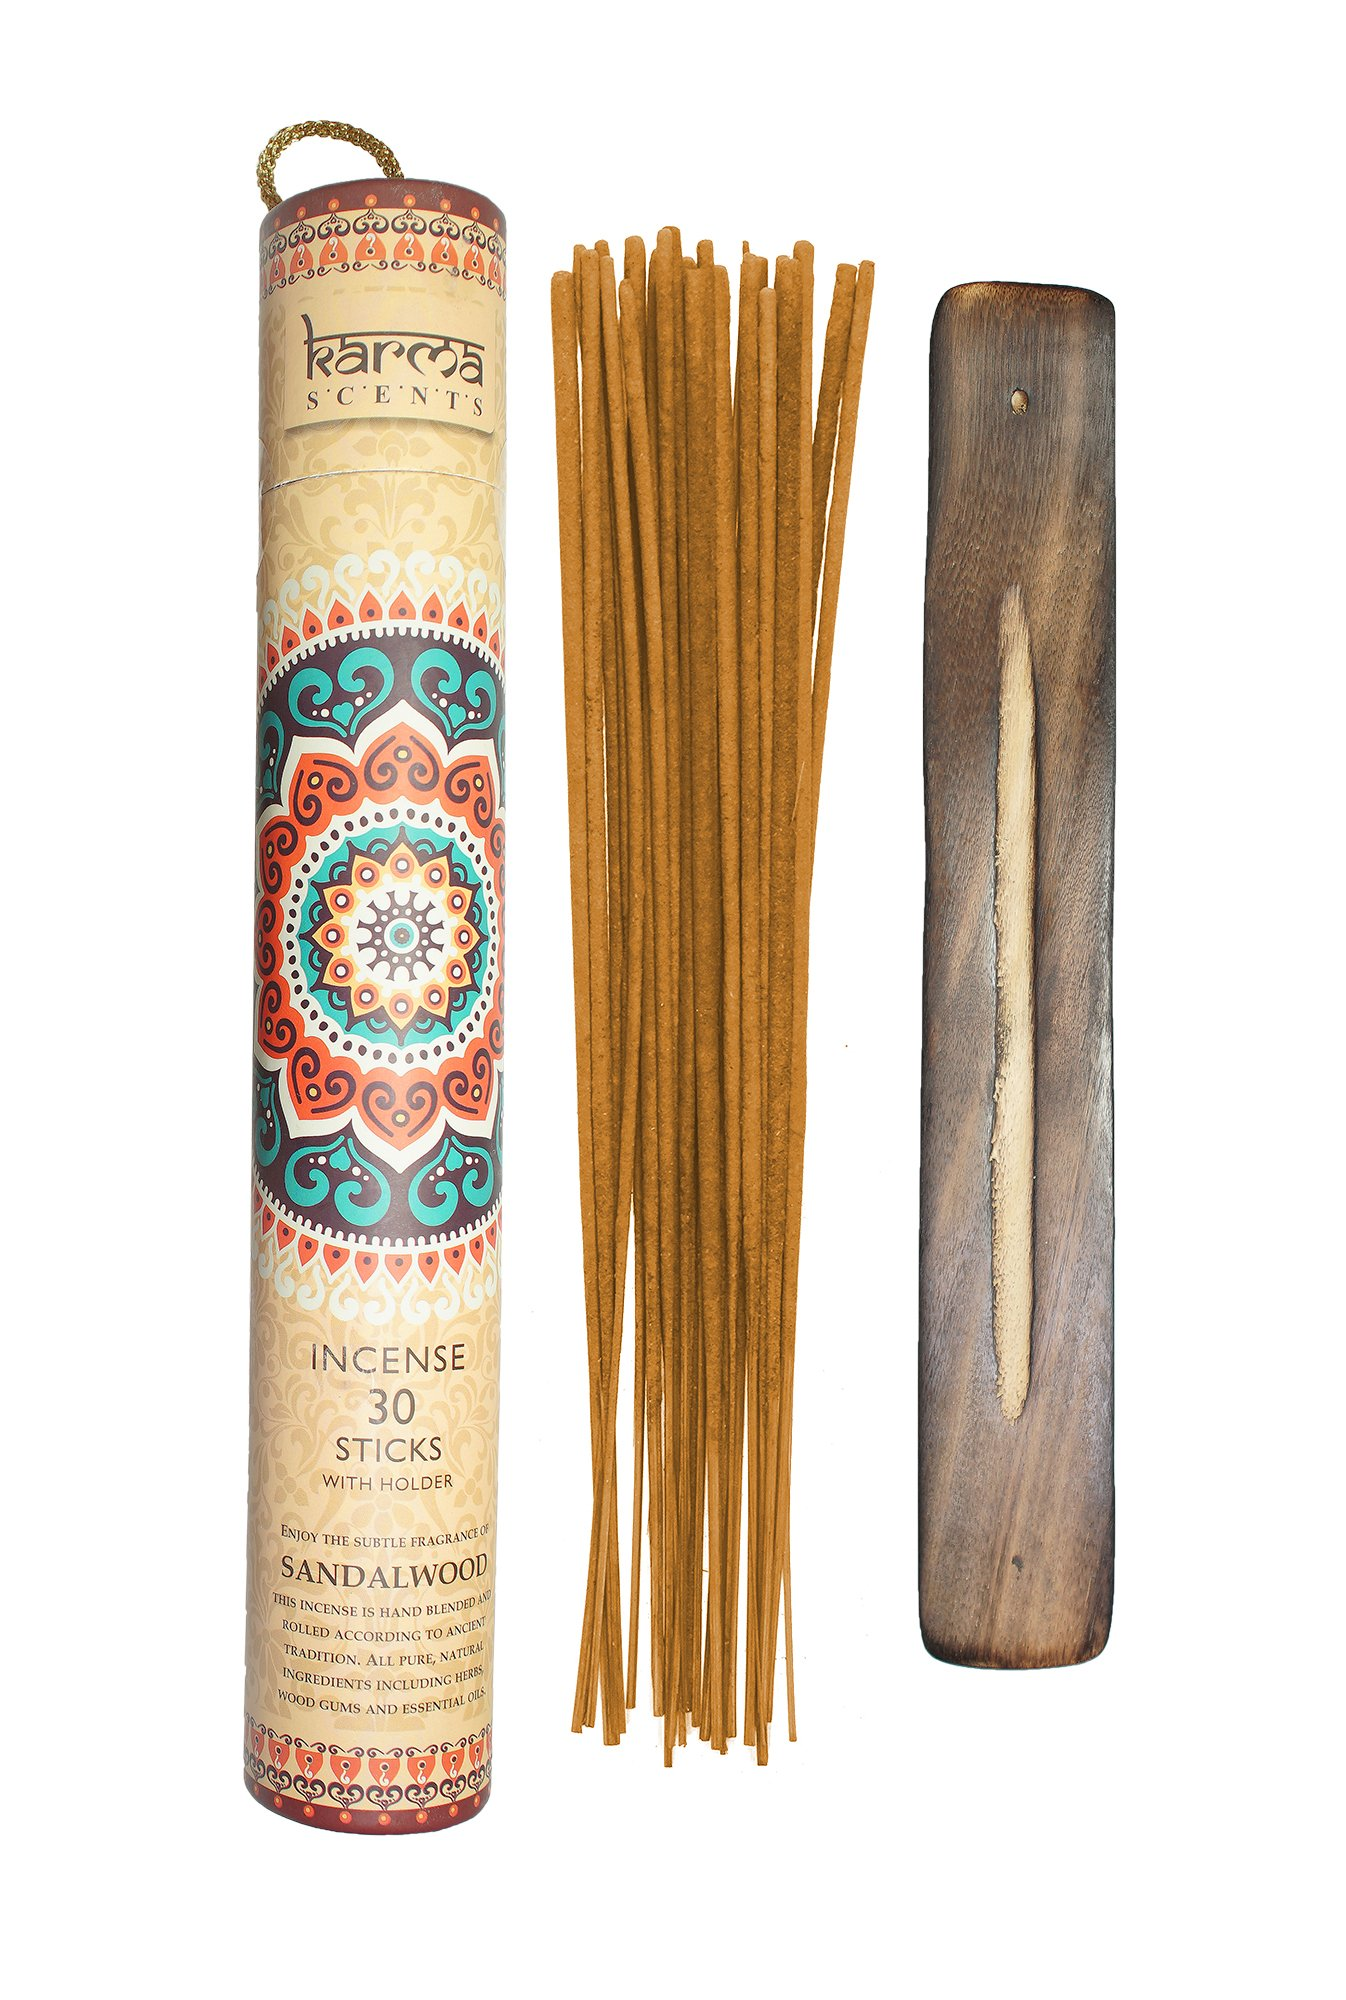 Premium Sandalwood Incense Sticks 5 Set Gift Pack with a Holder In Each Box, Includes 150 Sticks and Five Incense Burners by Karma Scents (Image #4)